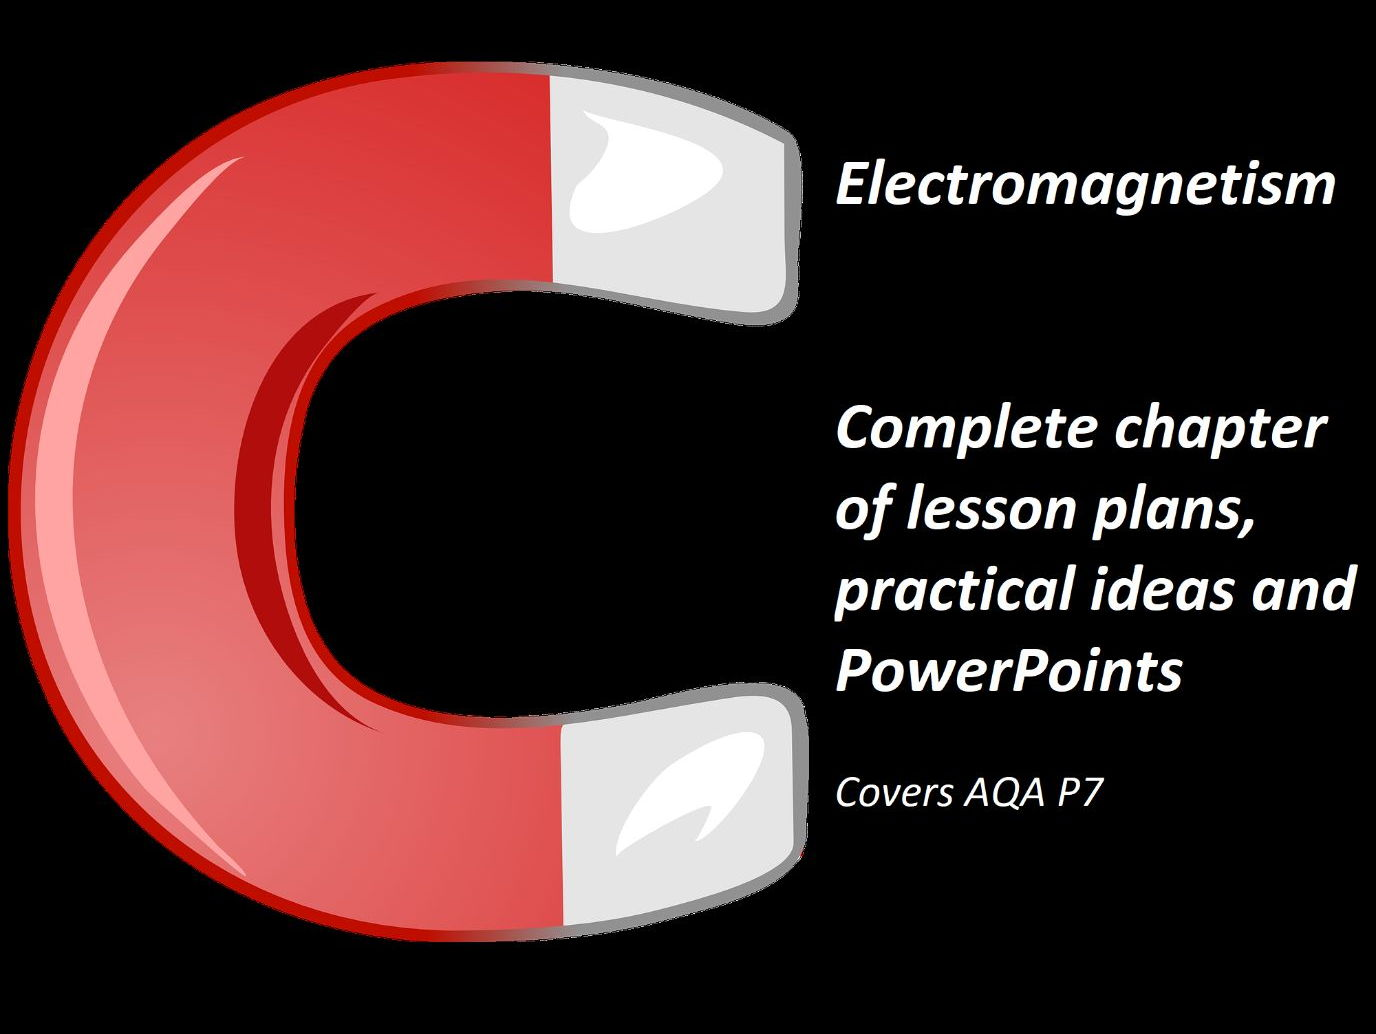 AQA P7 - Electromagnetism - GCSE Physics - 8 lesson plans and PowerPoints